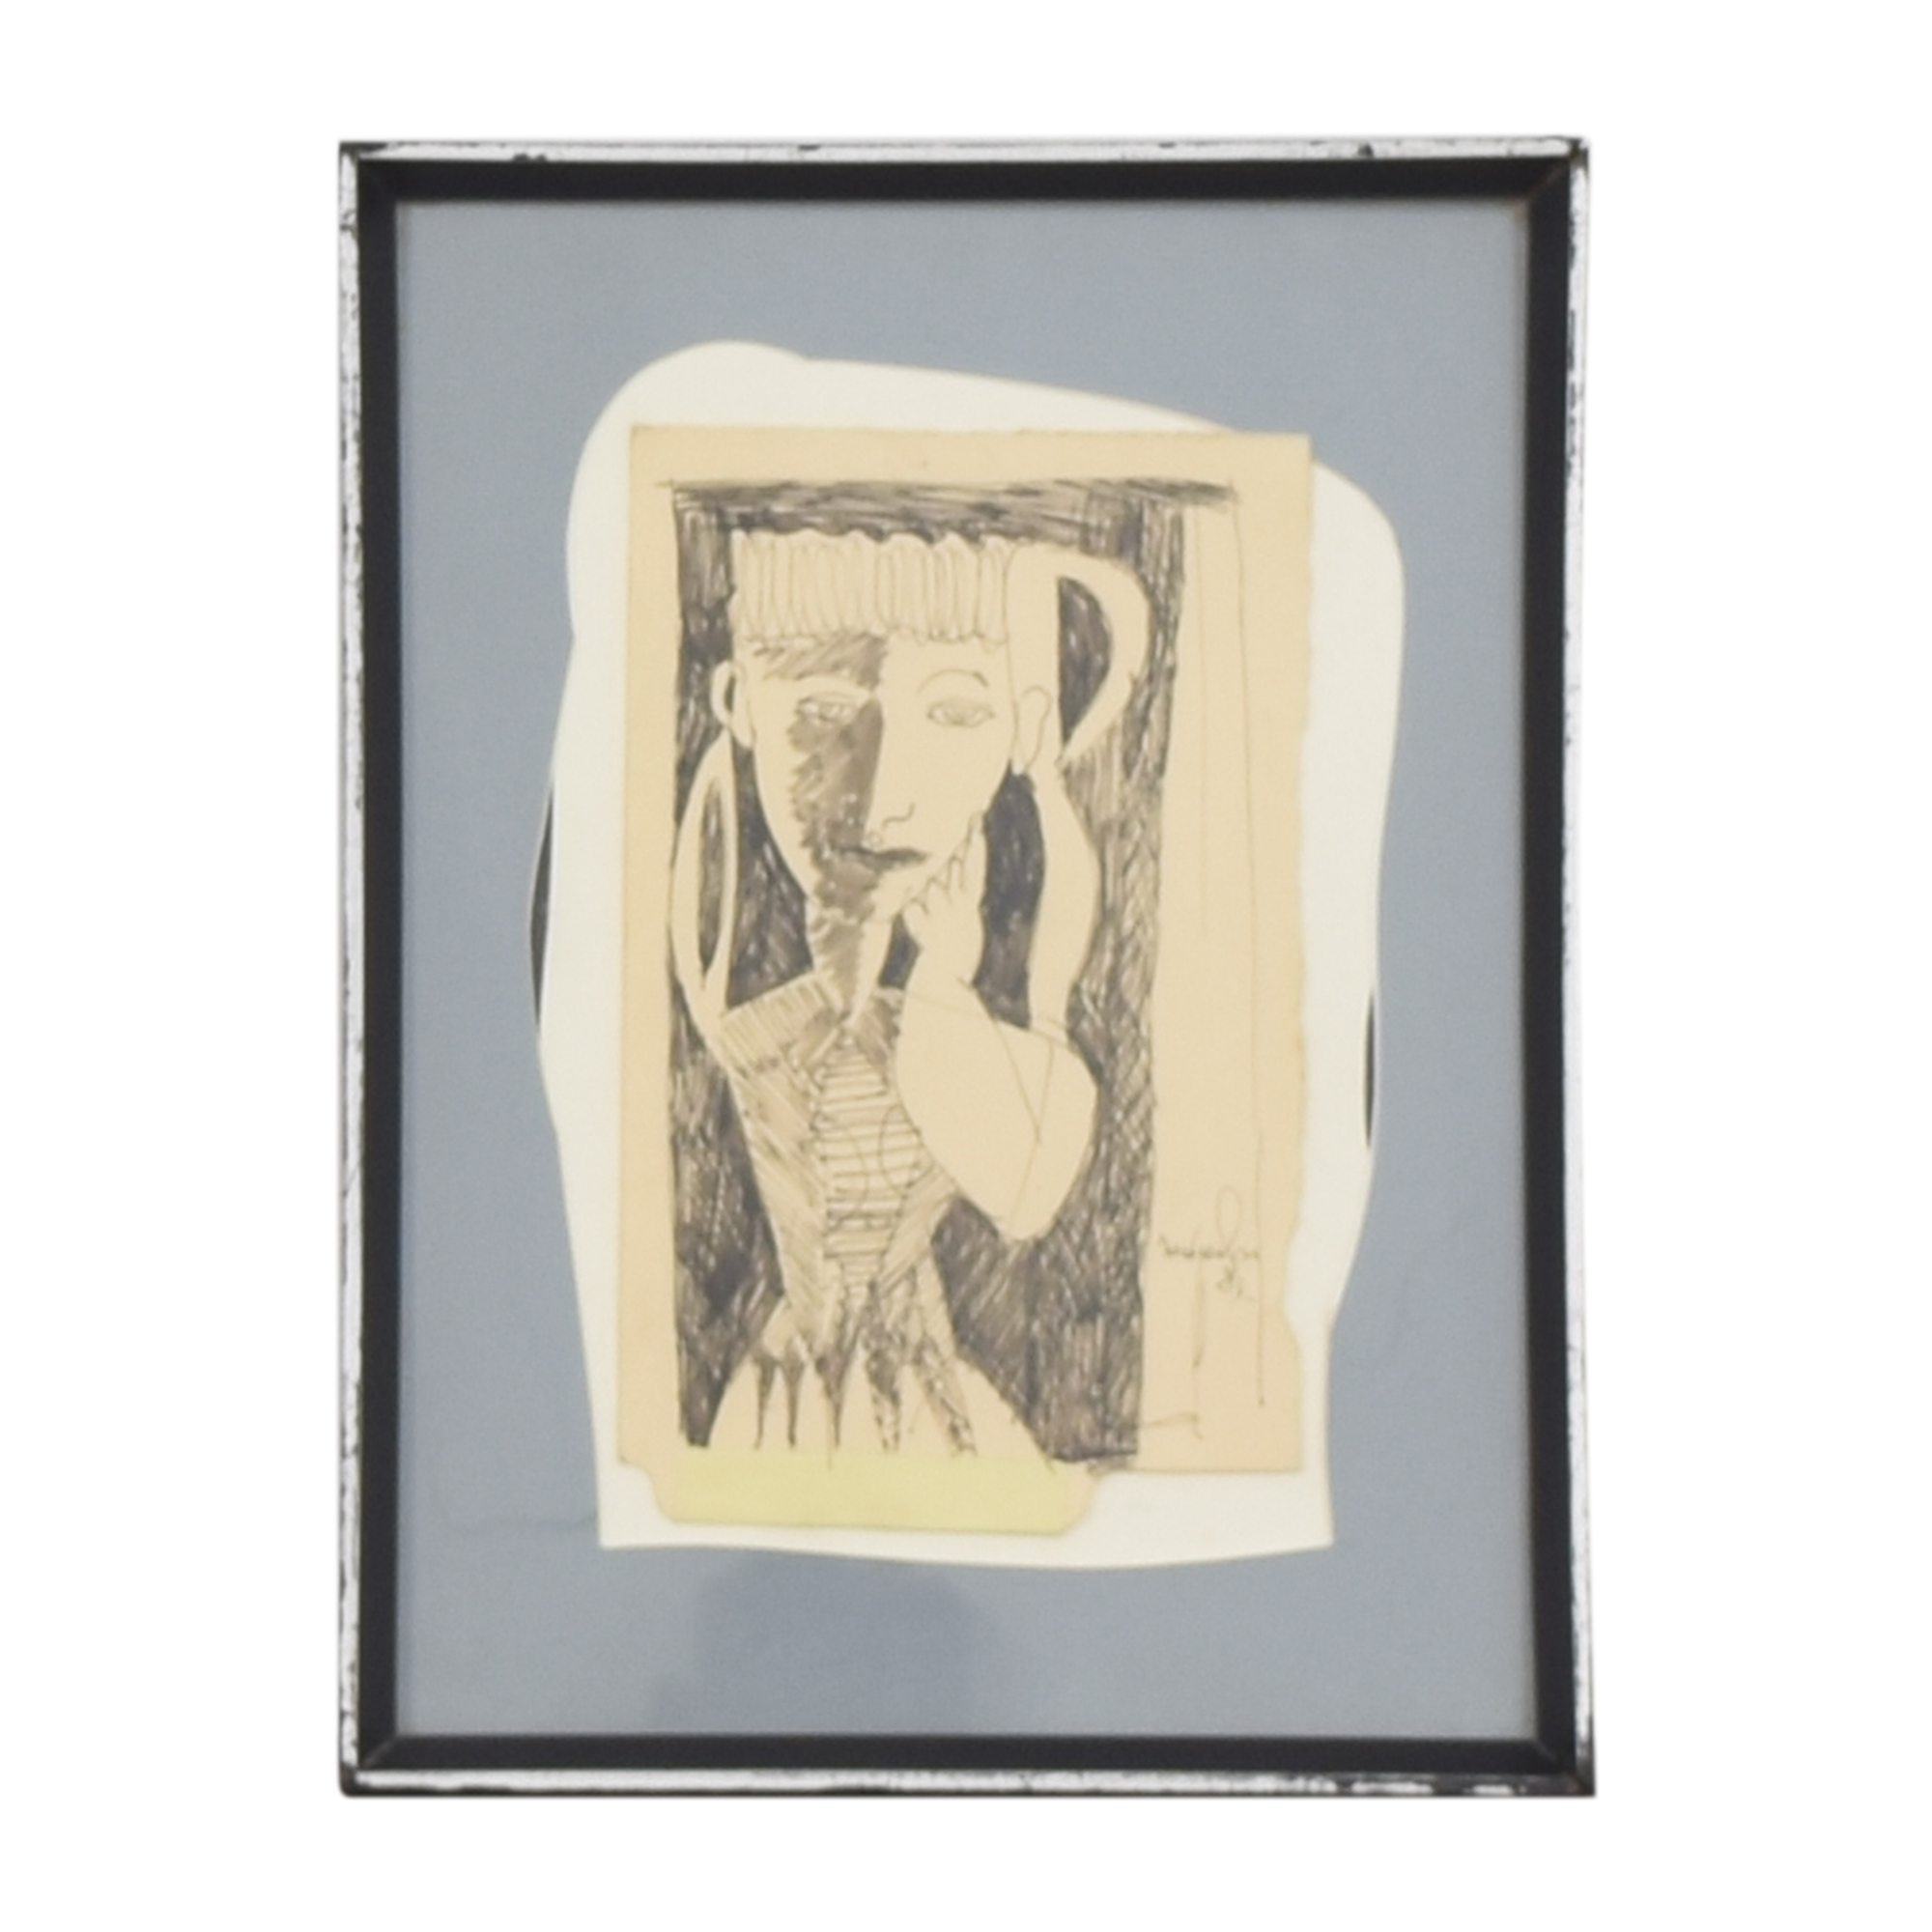 Framed Collage Drawing